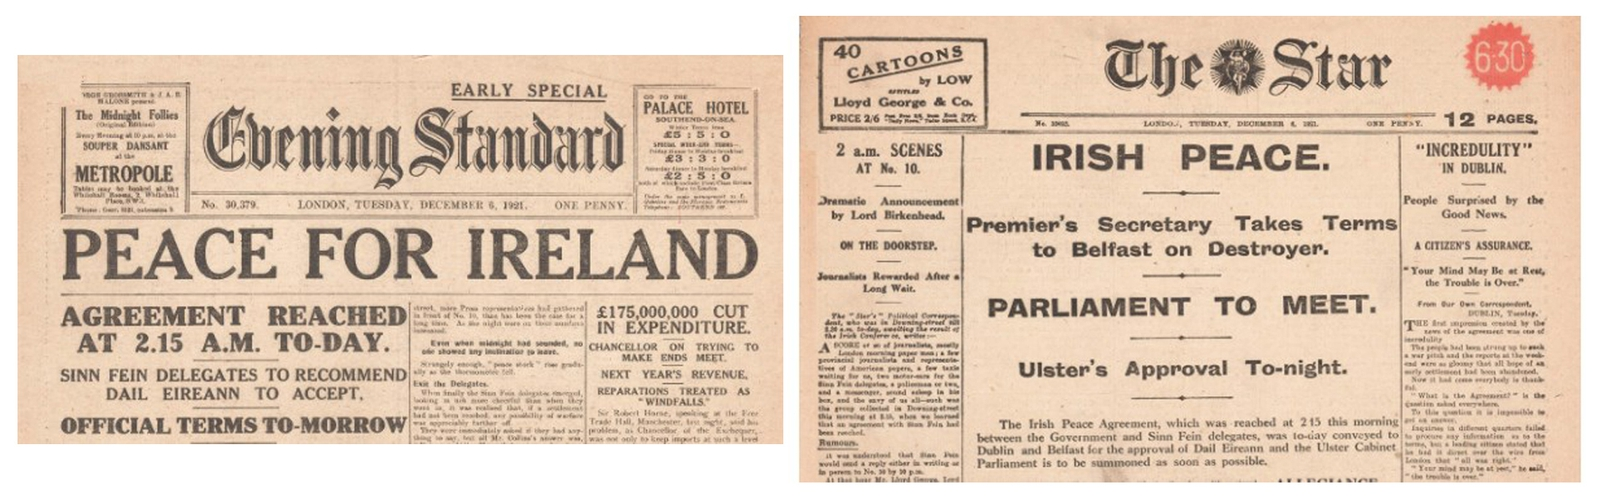 Image - Newspapers in Dublin and London managed to hit the streets with overnight specials that very morning. Credit: Alamy Images.